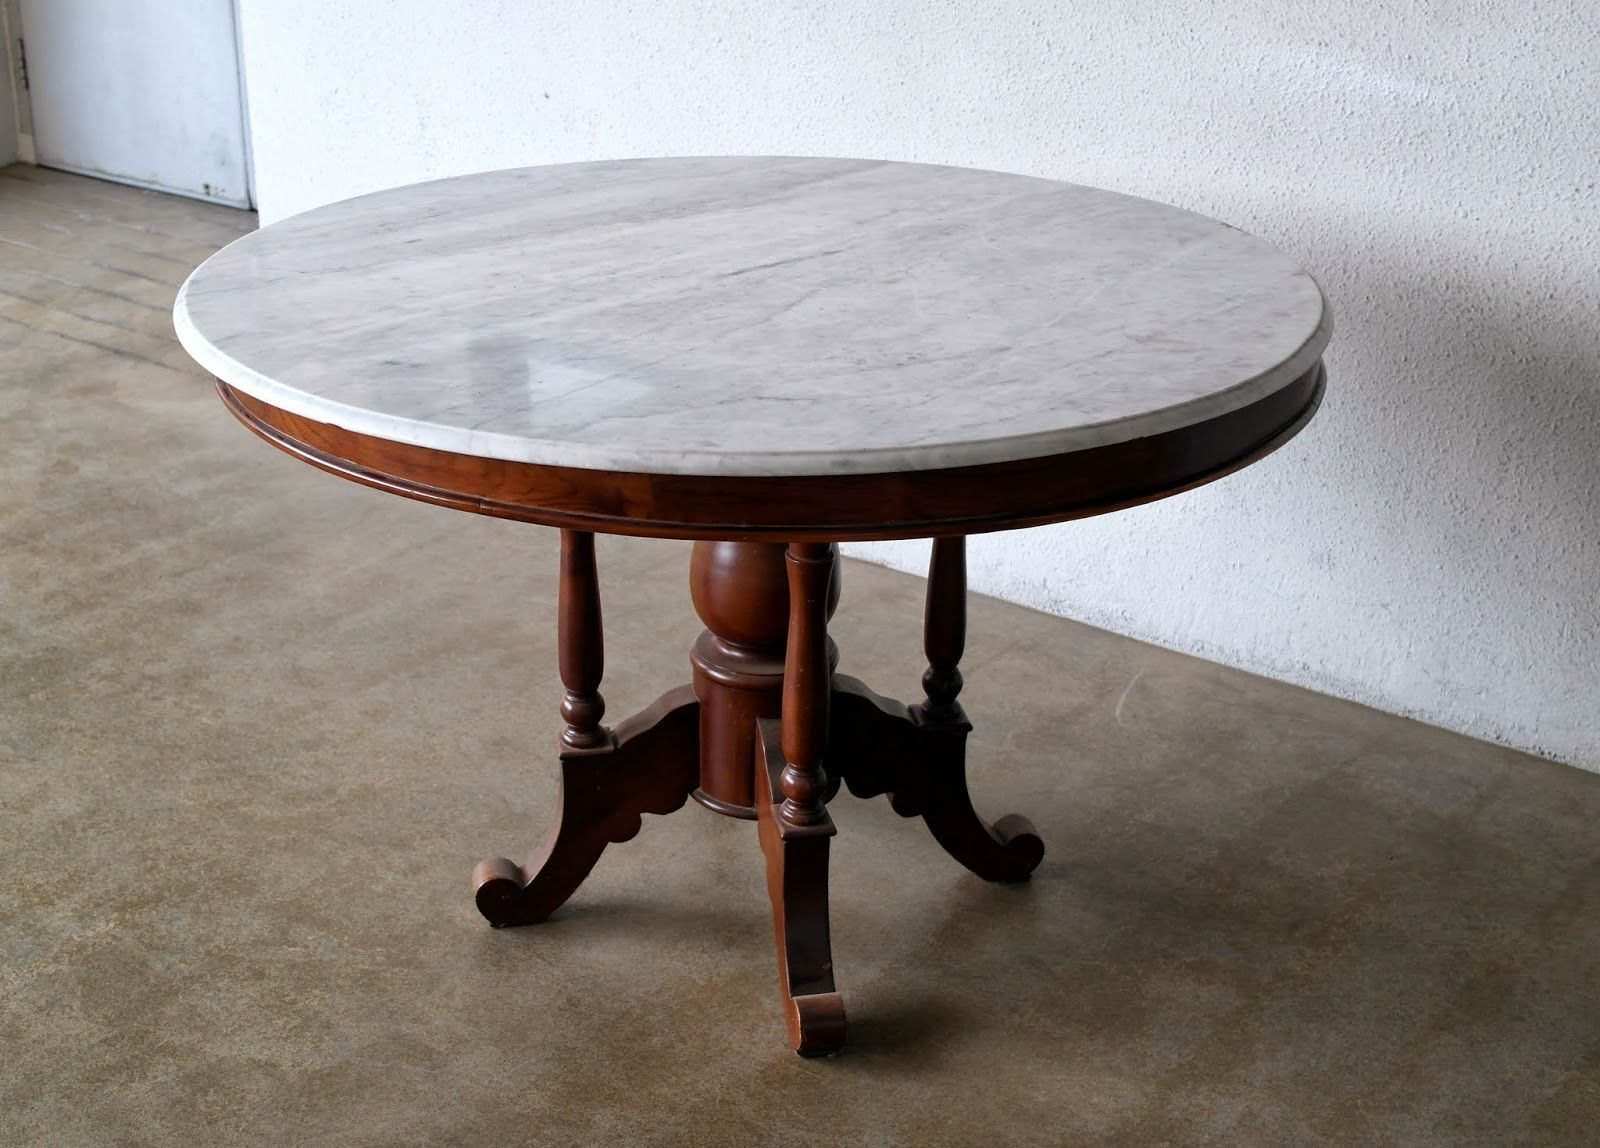 Round Marble Top Dining Table Image Result For Marble Top Dining Table For Sale